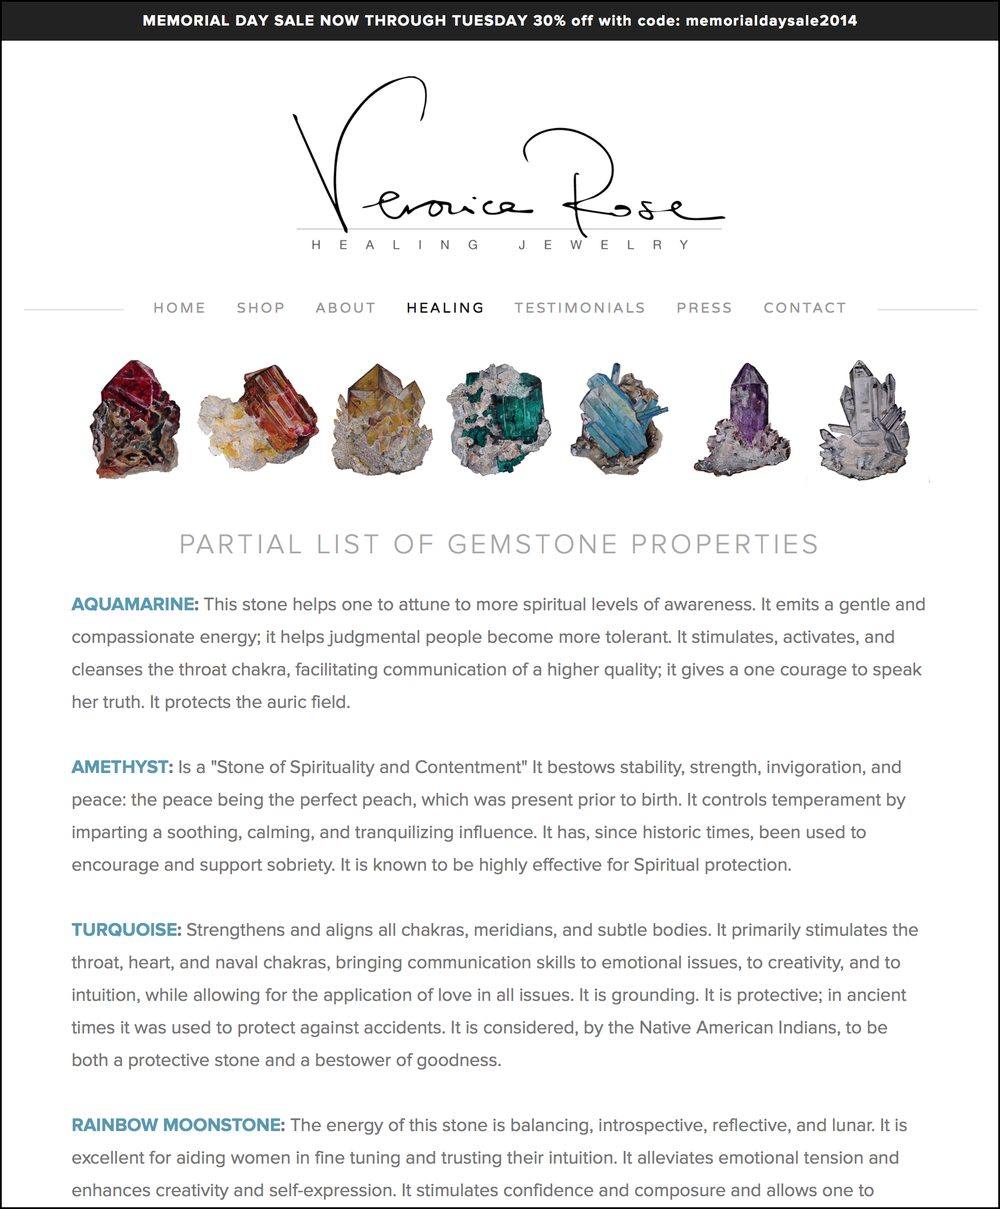 Gemstone-Properties-—-Veronica-Rose-Jewelry.png